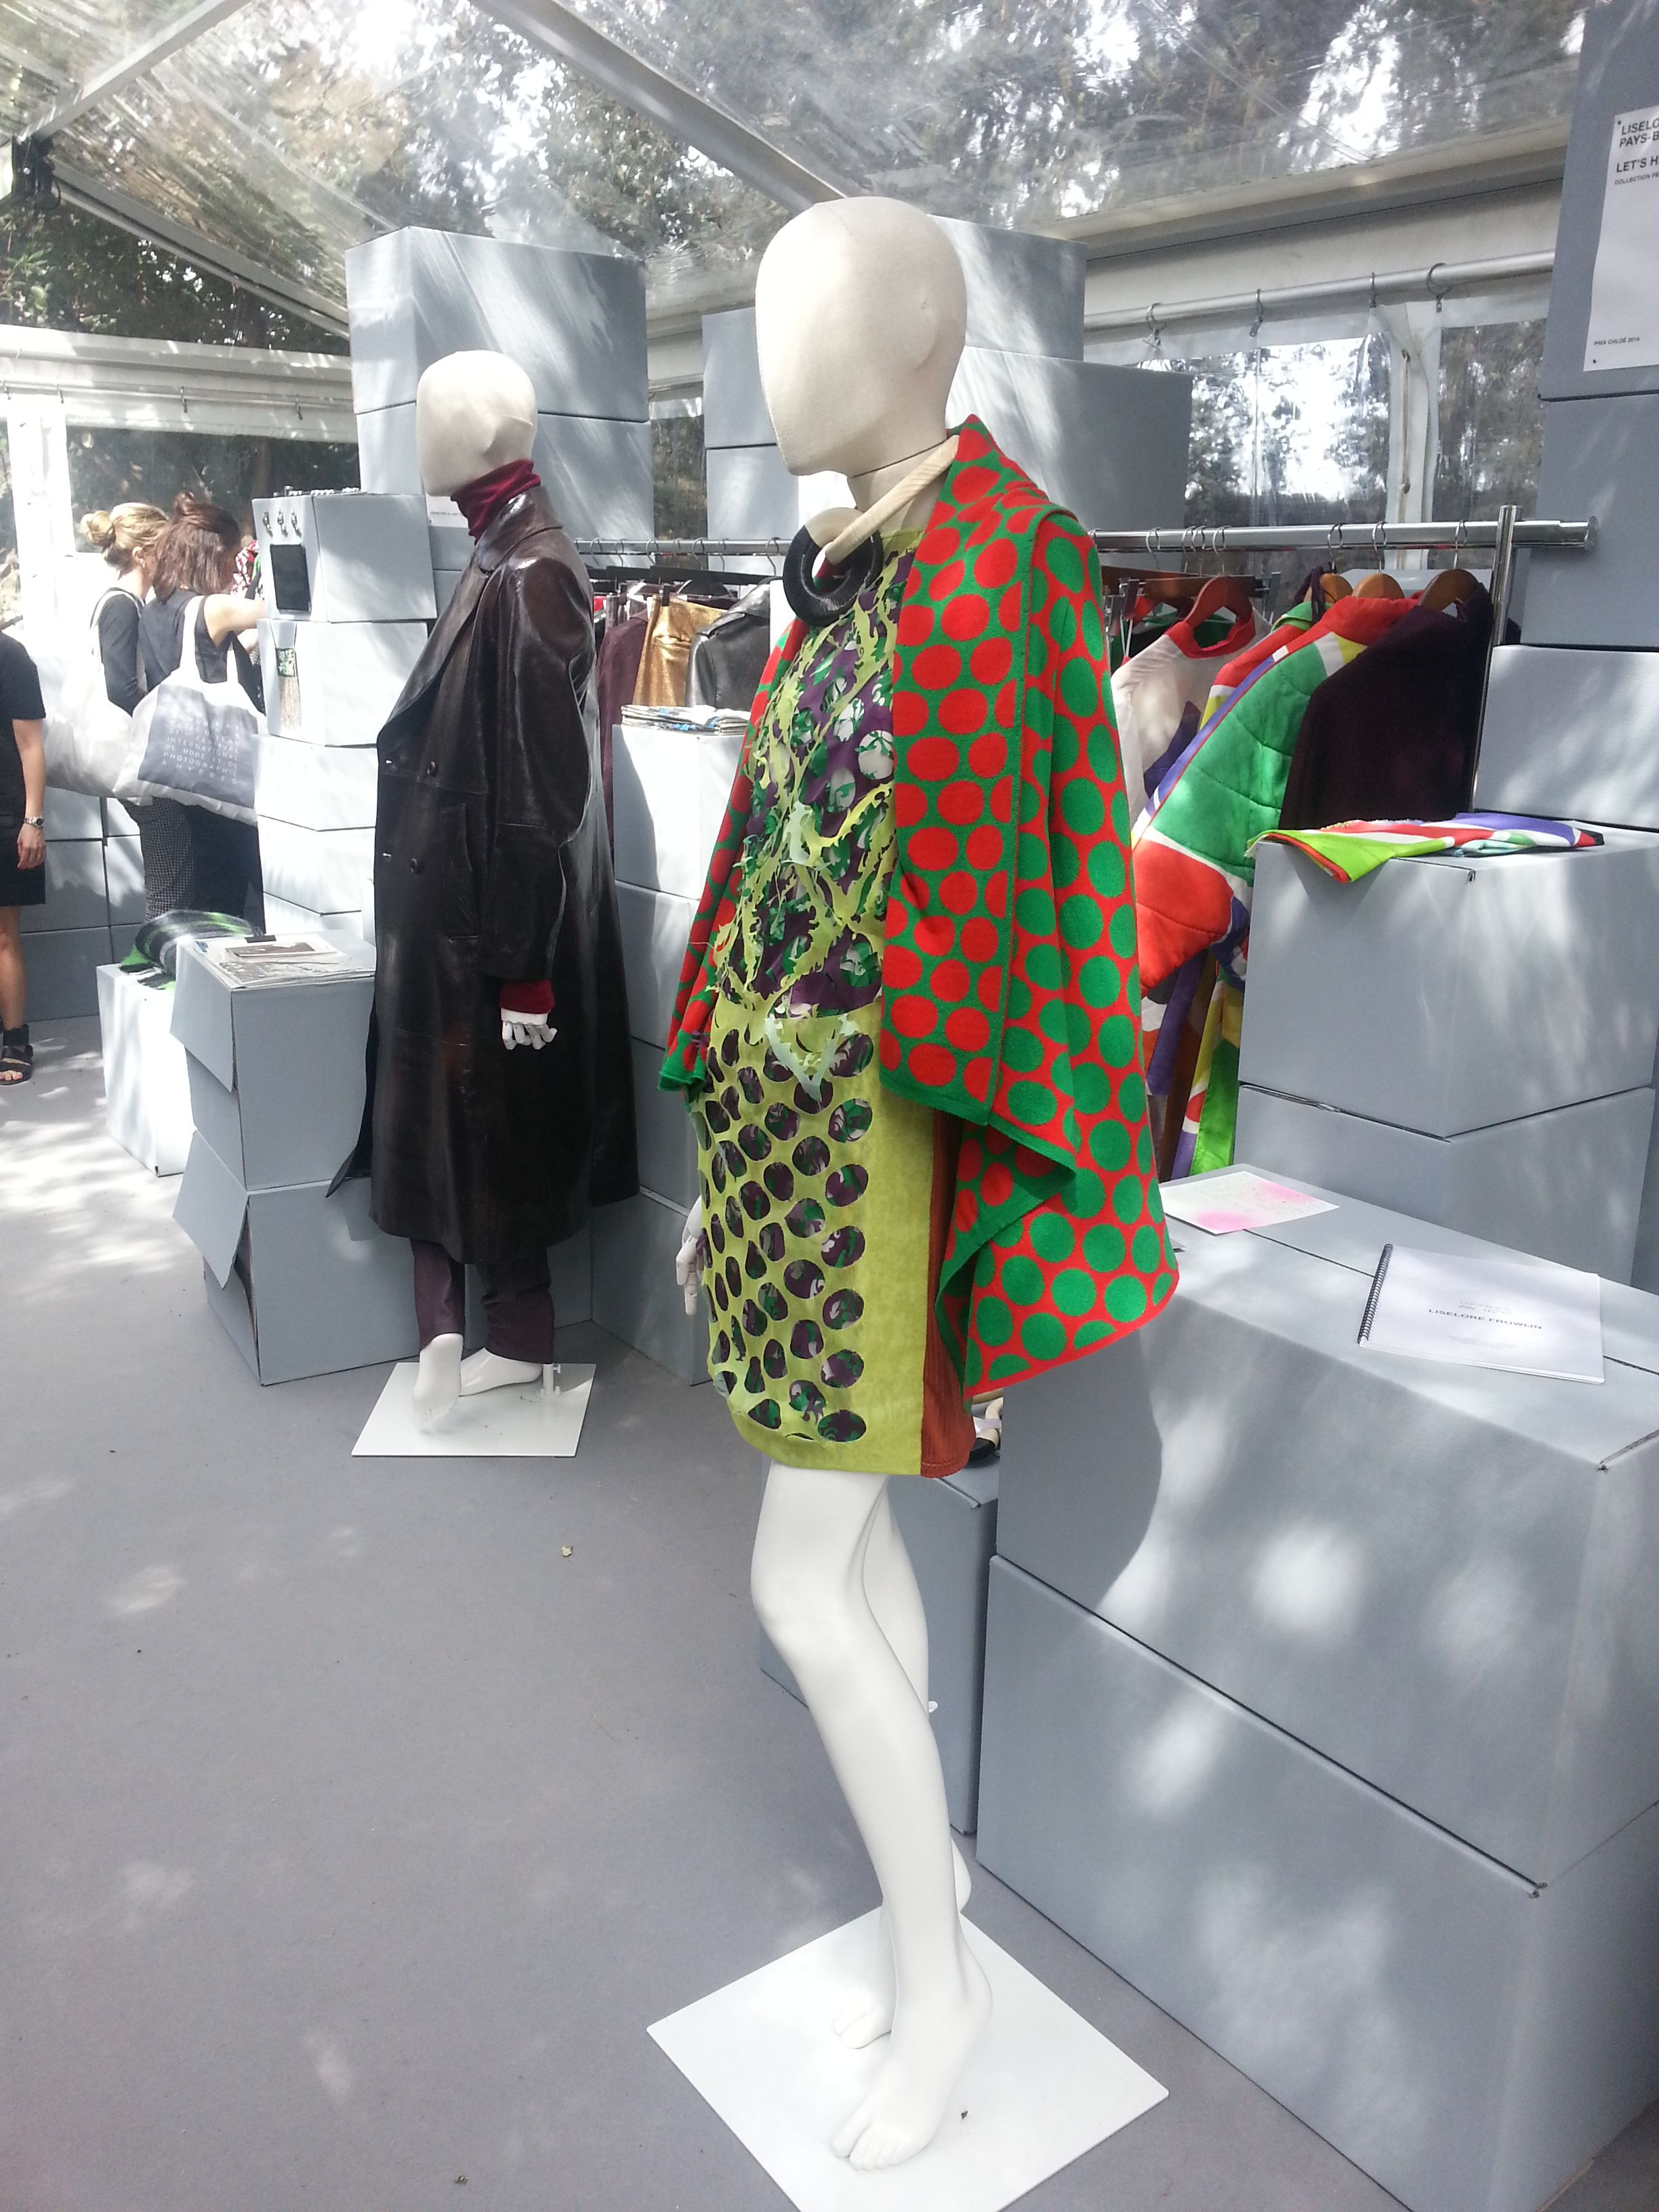 31st International Festival of Fashion & Photography in Hyères | As an official partner of the festival, Hans Boodt supported the festival competition; supplying mannequins for the pop-up showrooms of this years designers and designers from former editions.